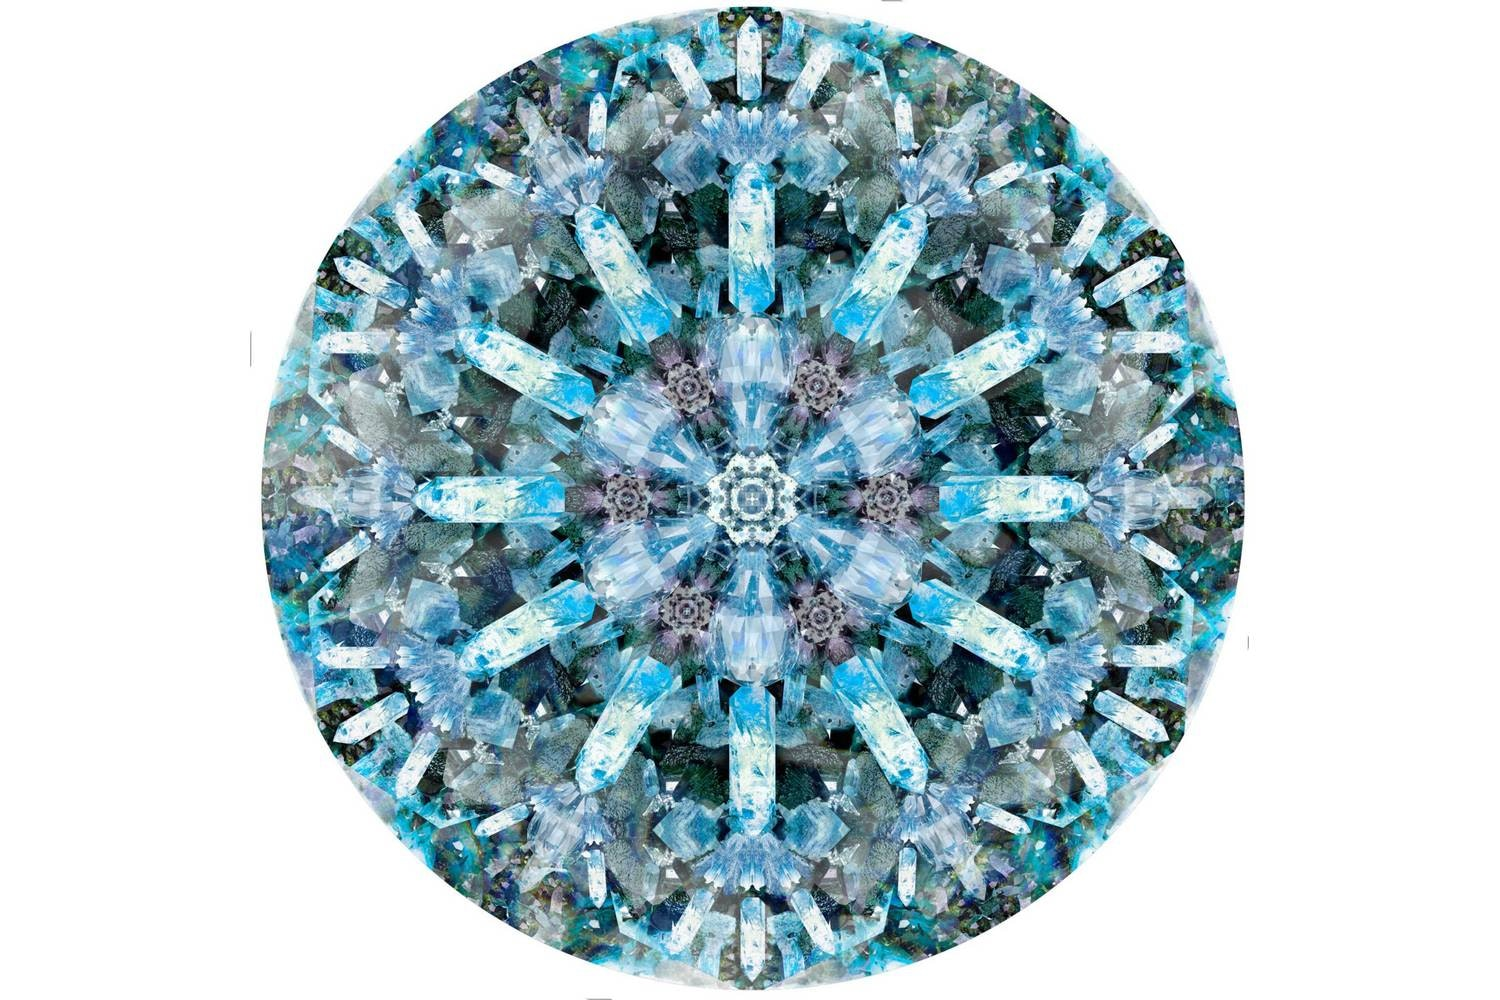 Crystal Ice Rug by Marcel Wanders for Moooi Carpets